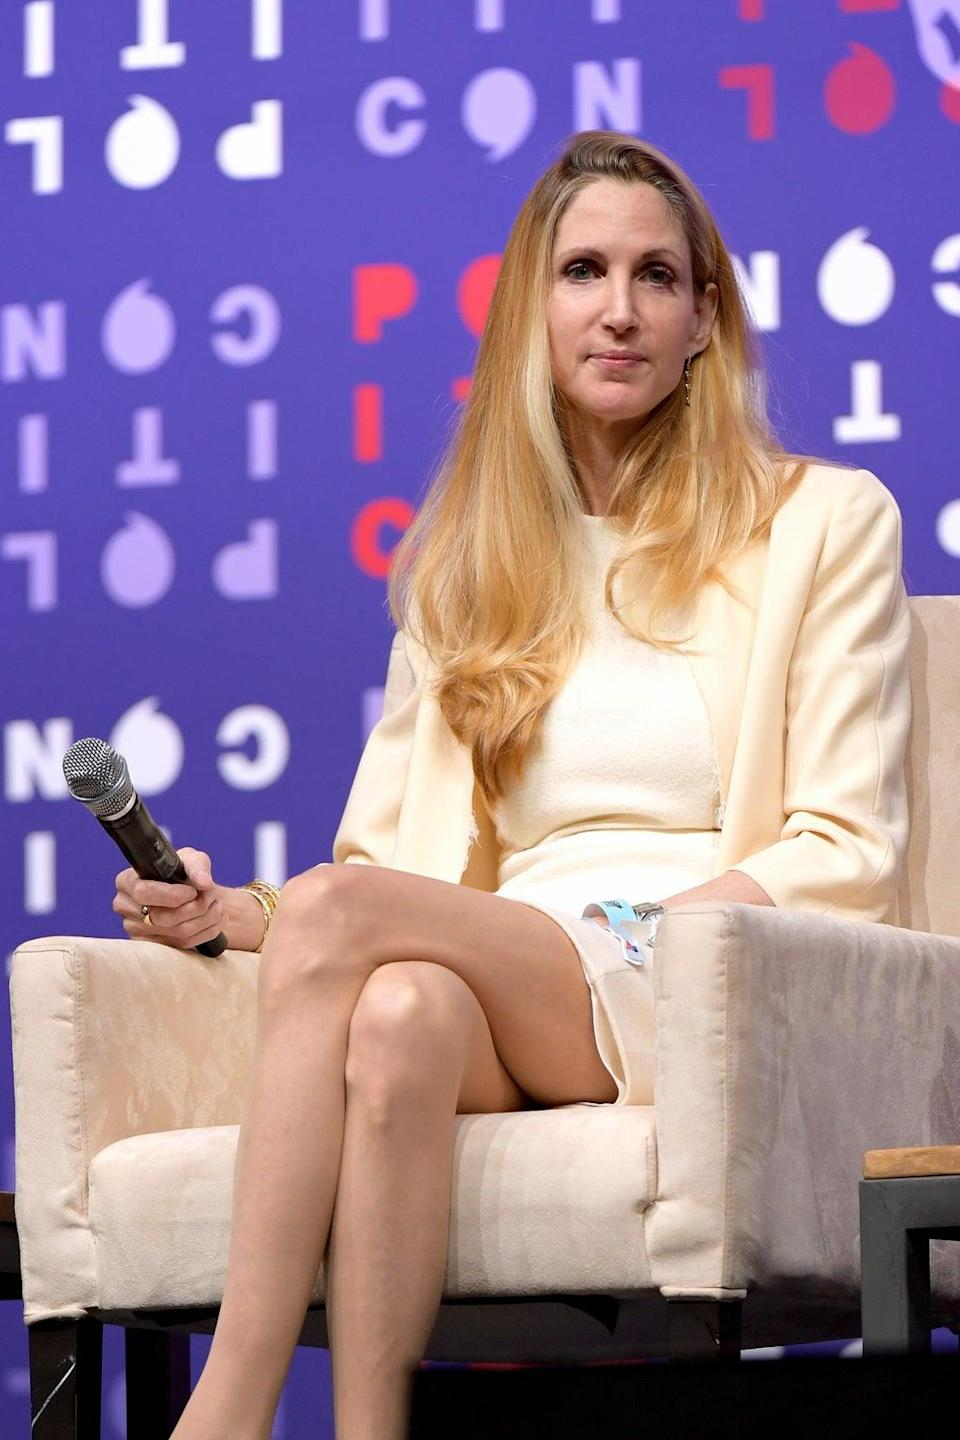 Ann Coulter speaks on stage at the 2019 Politicon at Music City Center on 26 October 2019 in Nashville, Tennessee (Jason Kempin/Getty Images for Politicon)